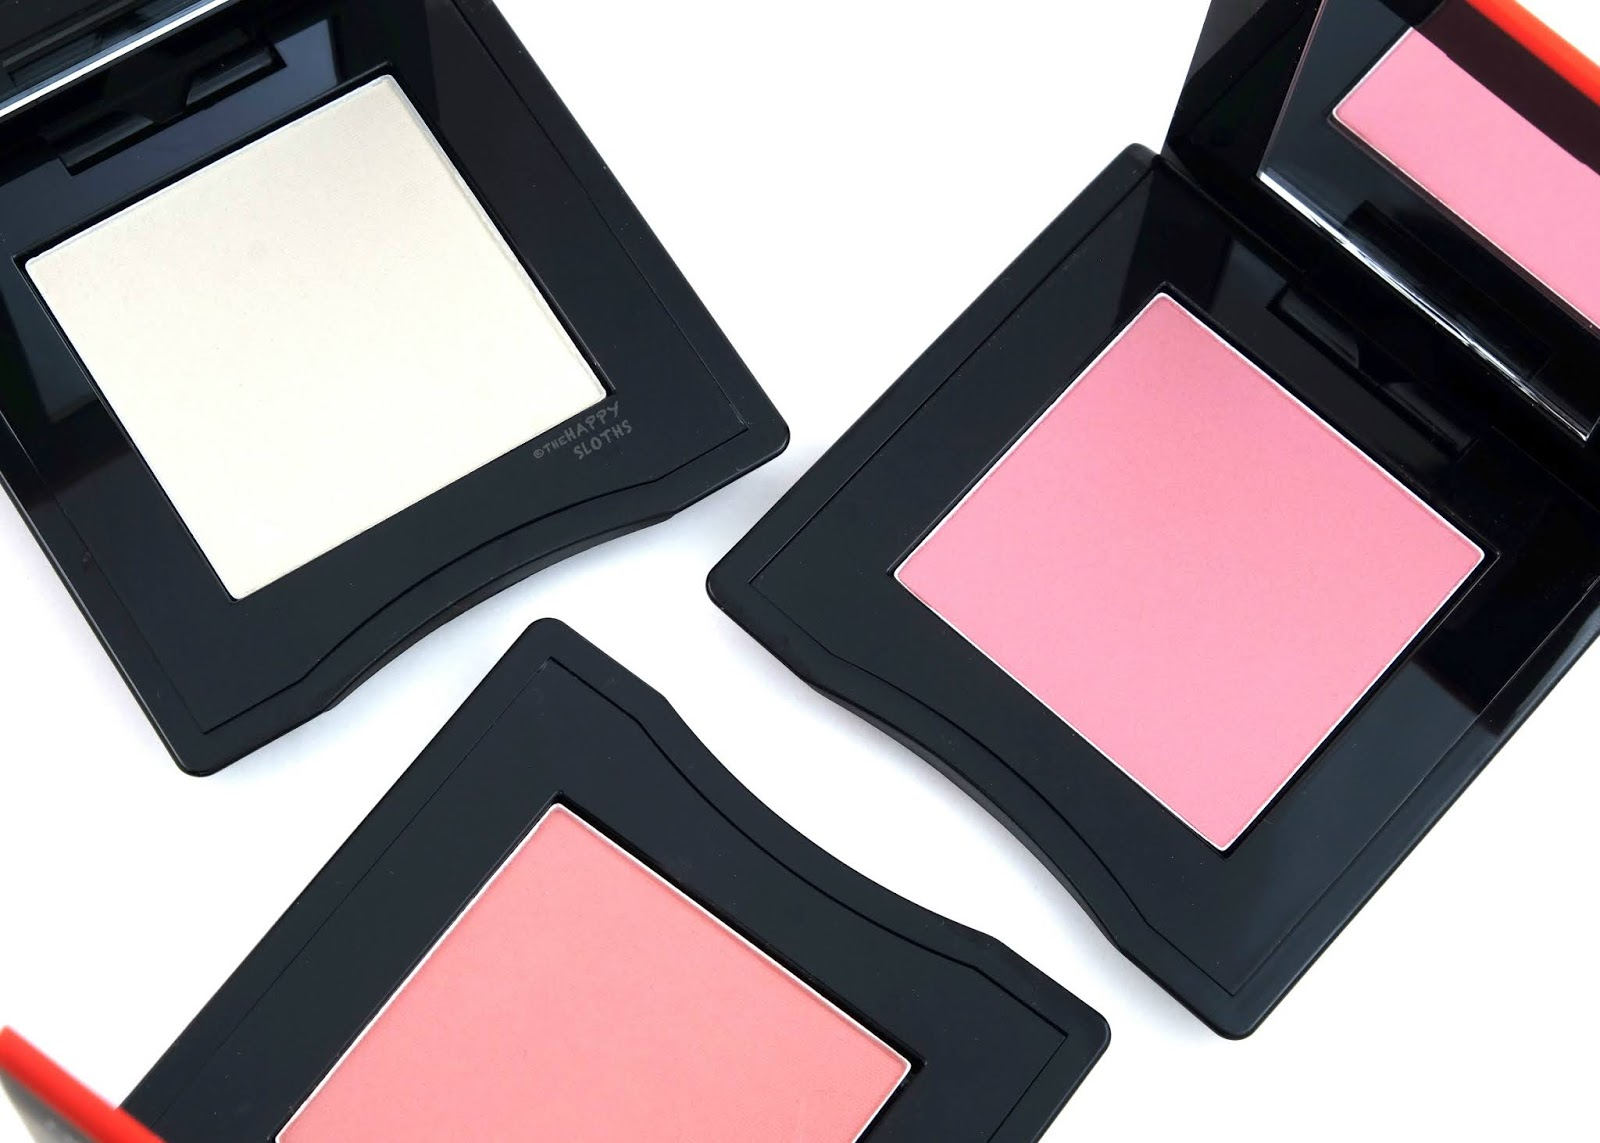 Shiseido | InnerGlow CheekPowder: Review and Swatches